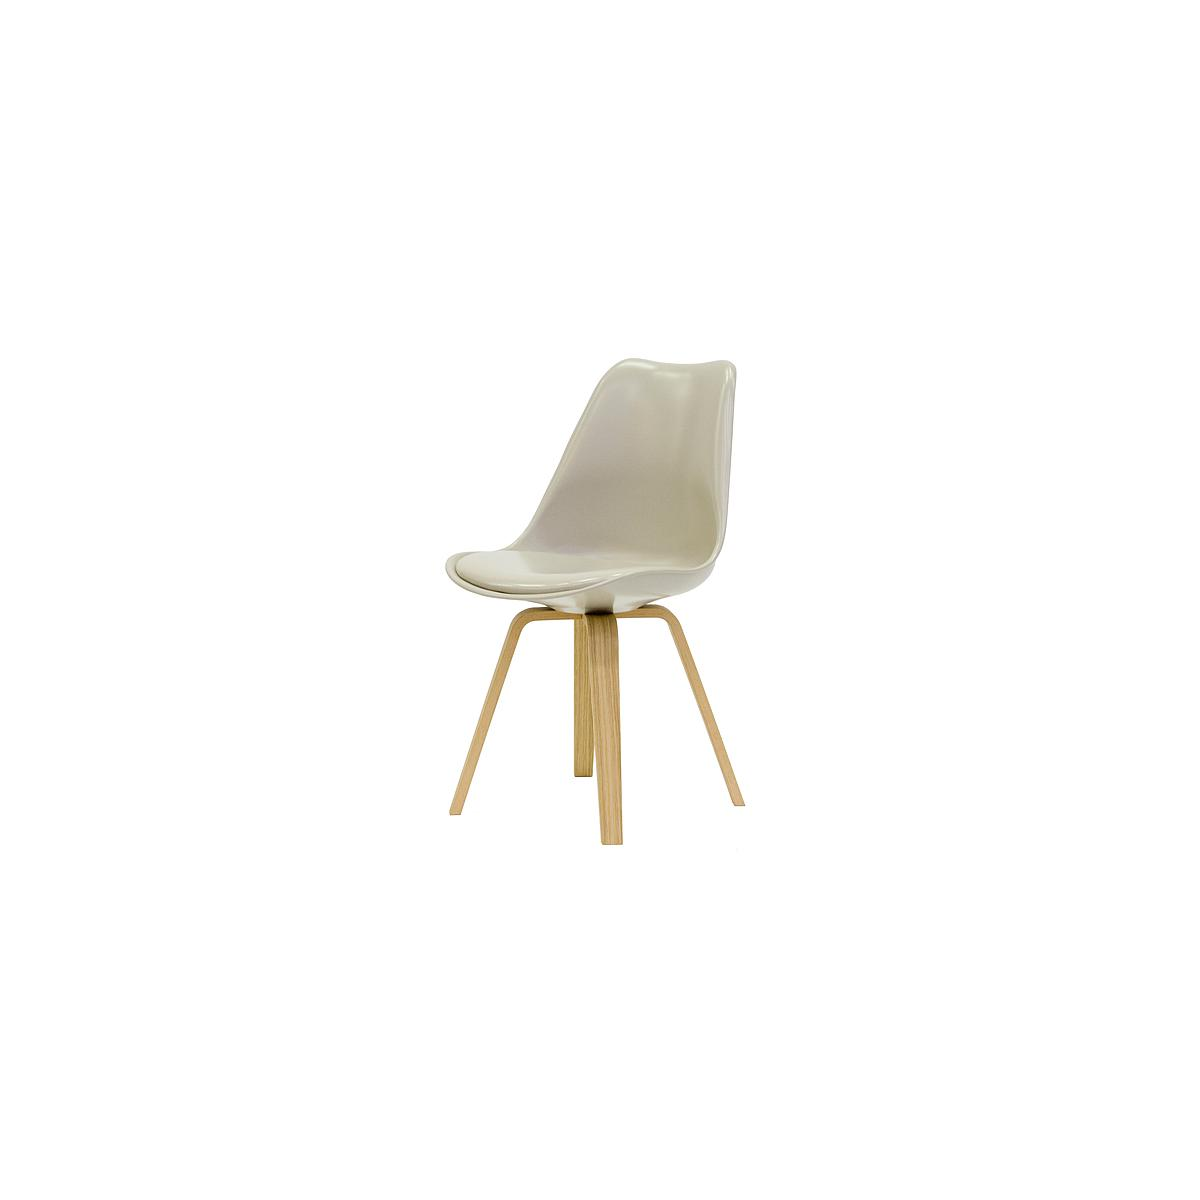 C-BAR by Tenzo Chaise Gina-Ella Assise warmgrey, Pied: chêne